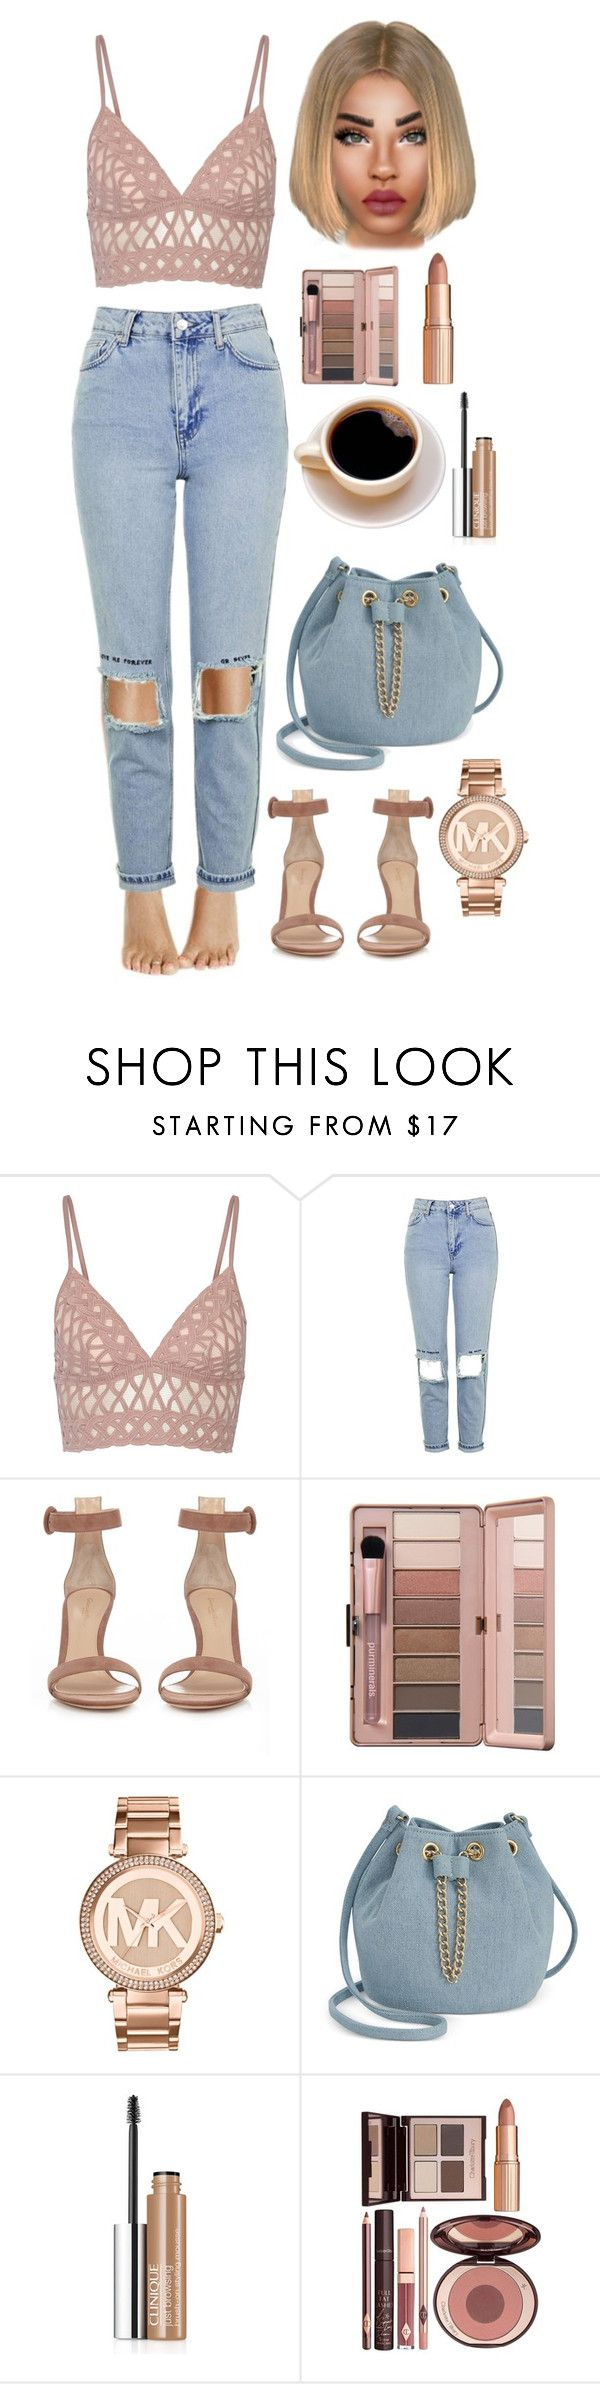 """Simkhai"" by lovelydgessy on Polyvore featuring Jonathan Simkhai, Topshop, Gianvito Rossi, Michael Kors, INC International Concepts, Clinique and Charlotte Tilbury"